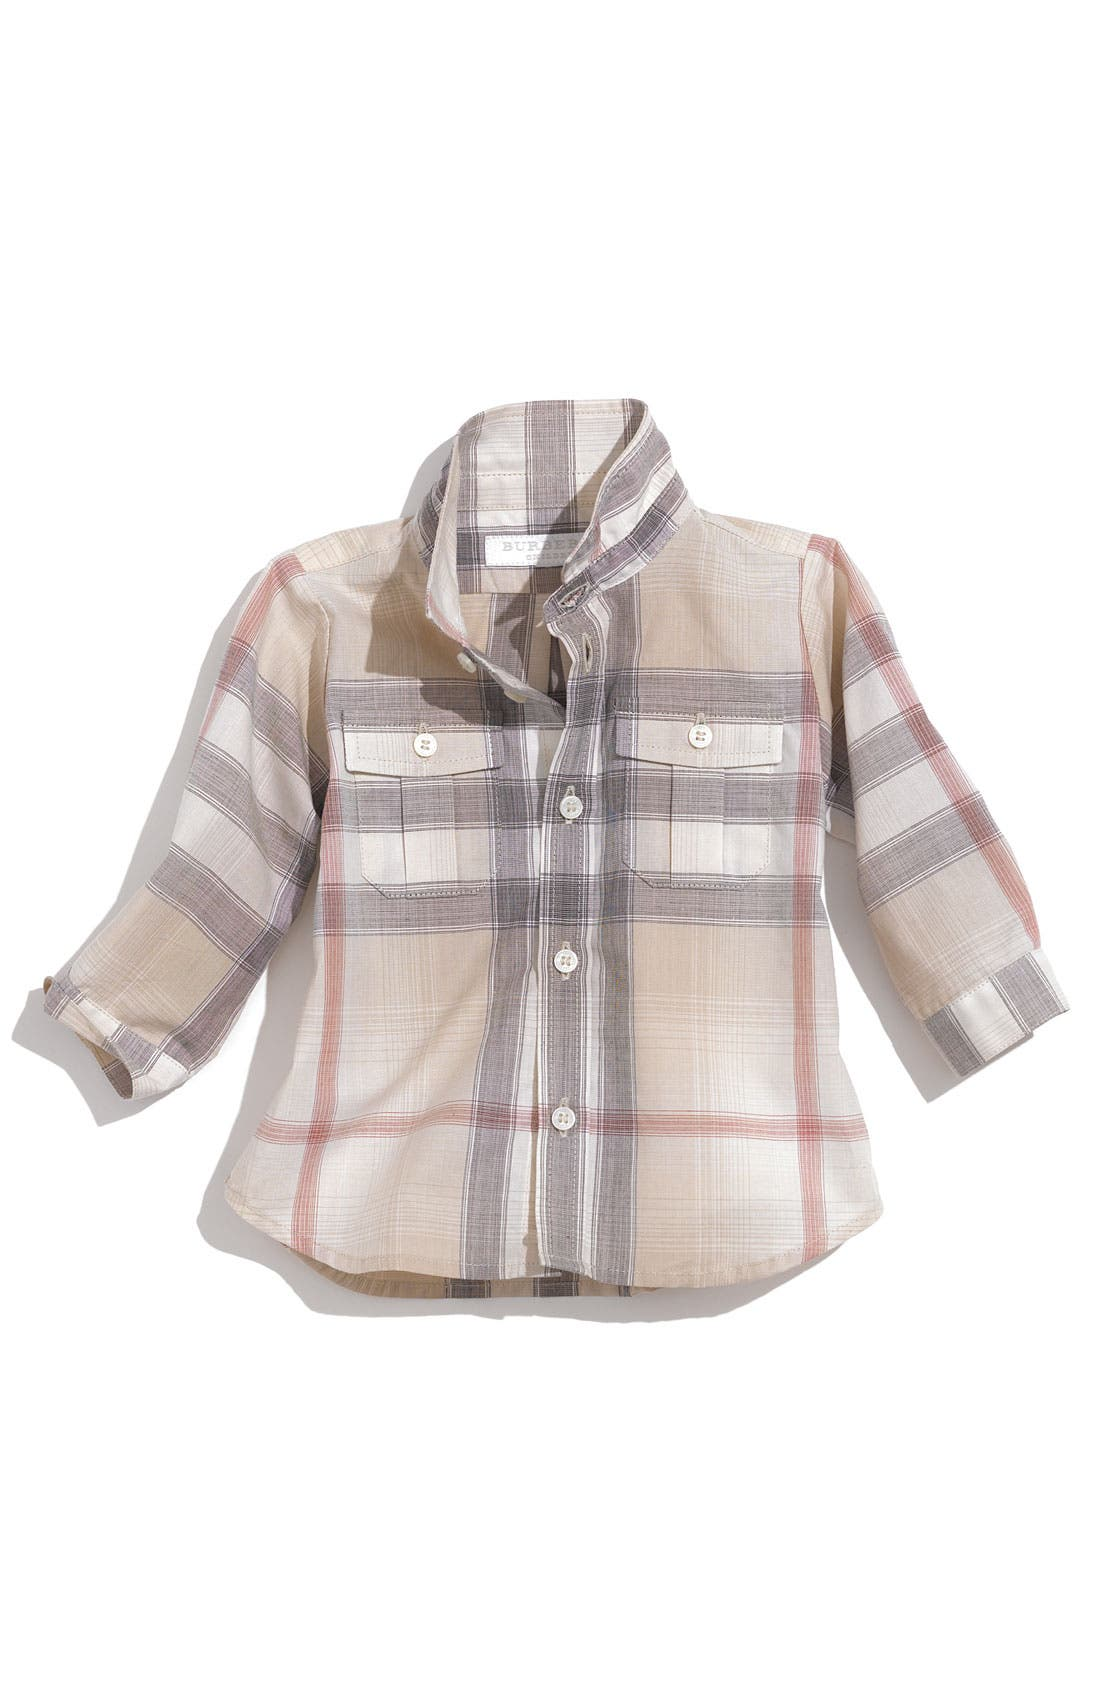 Alternate Image 1 Selected - Burberry Check Shirt (Infant)